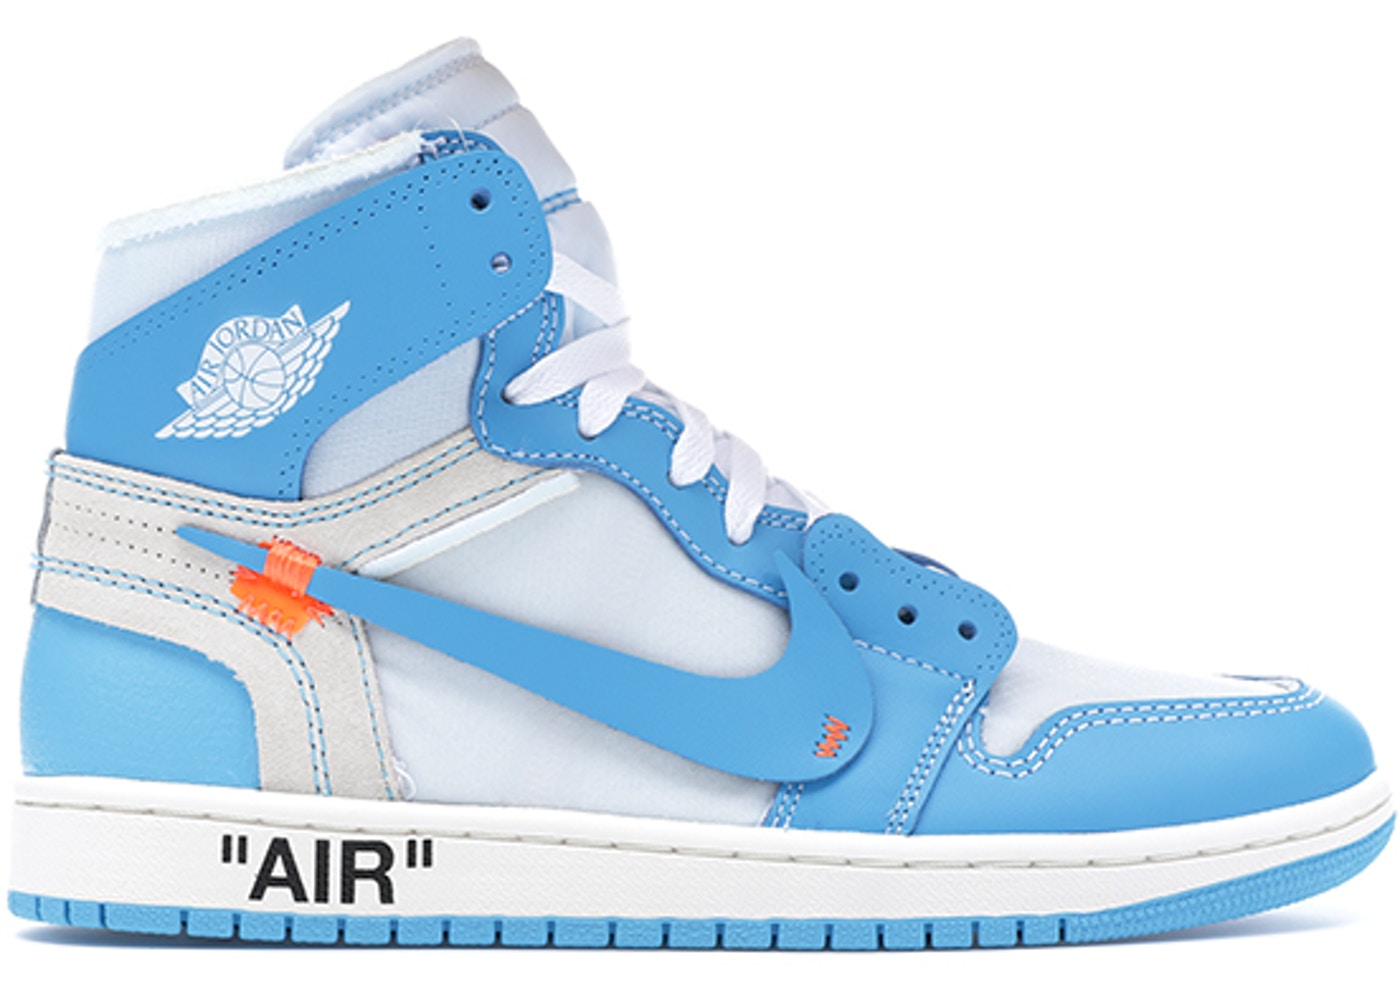 buy online 31144 bbf82 Buy Air Jordan 1 Shoes   Deadstock Sneakers